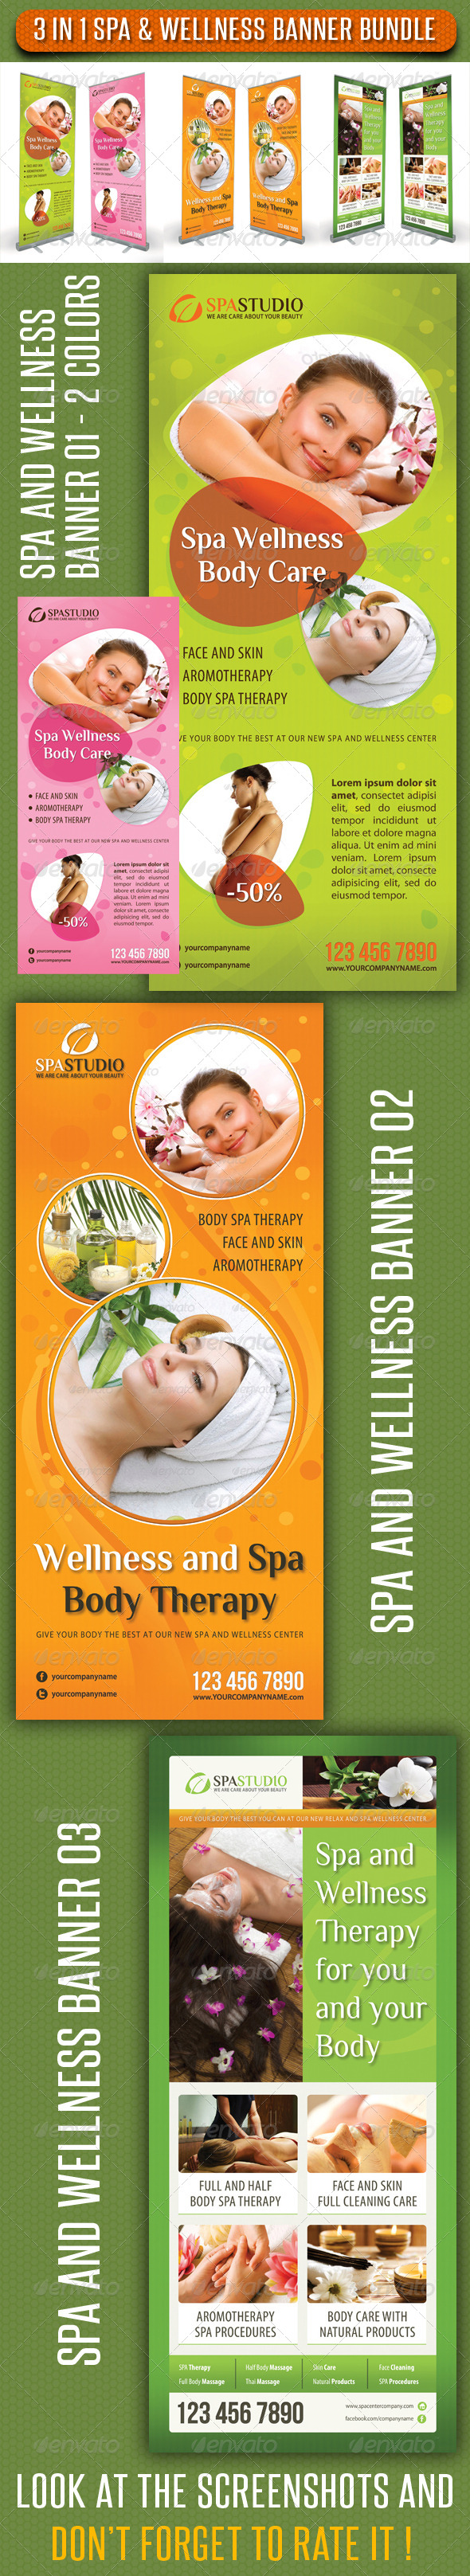 GraphicRiver 3 in 1 Spa Wellness Banner Bundle 03 6782112